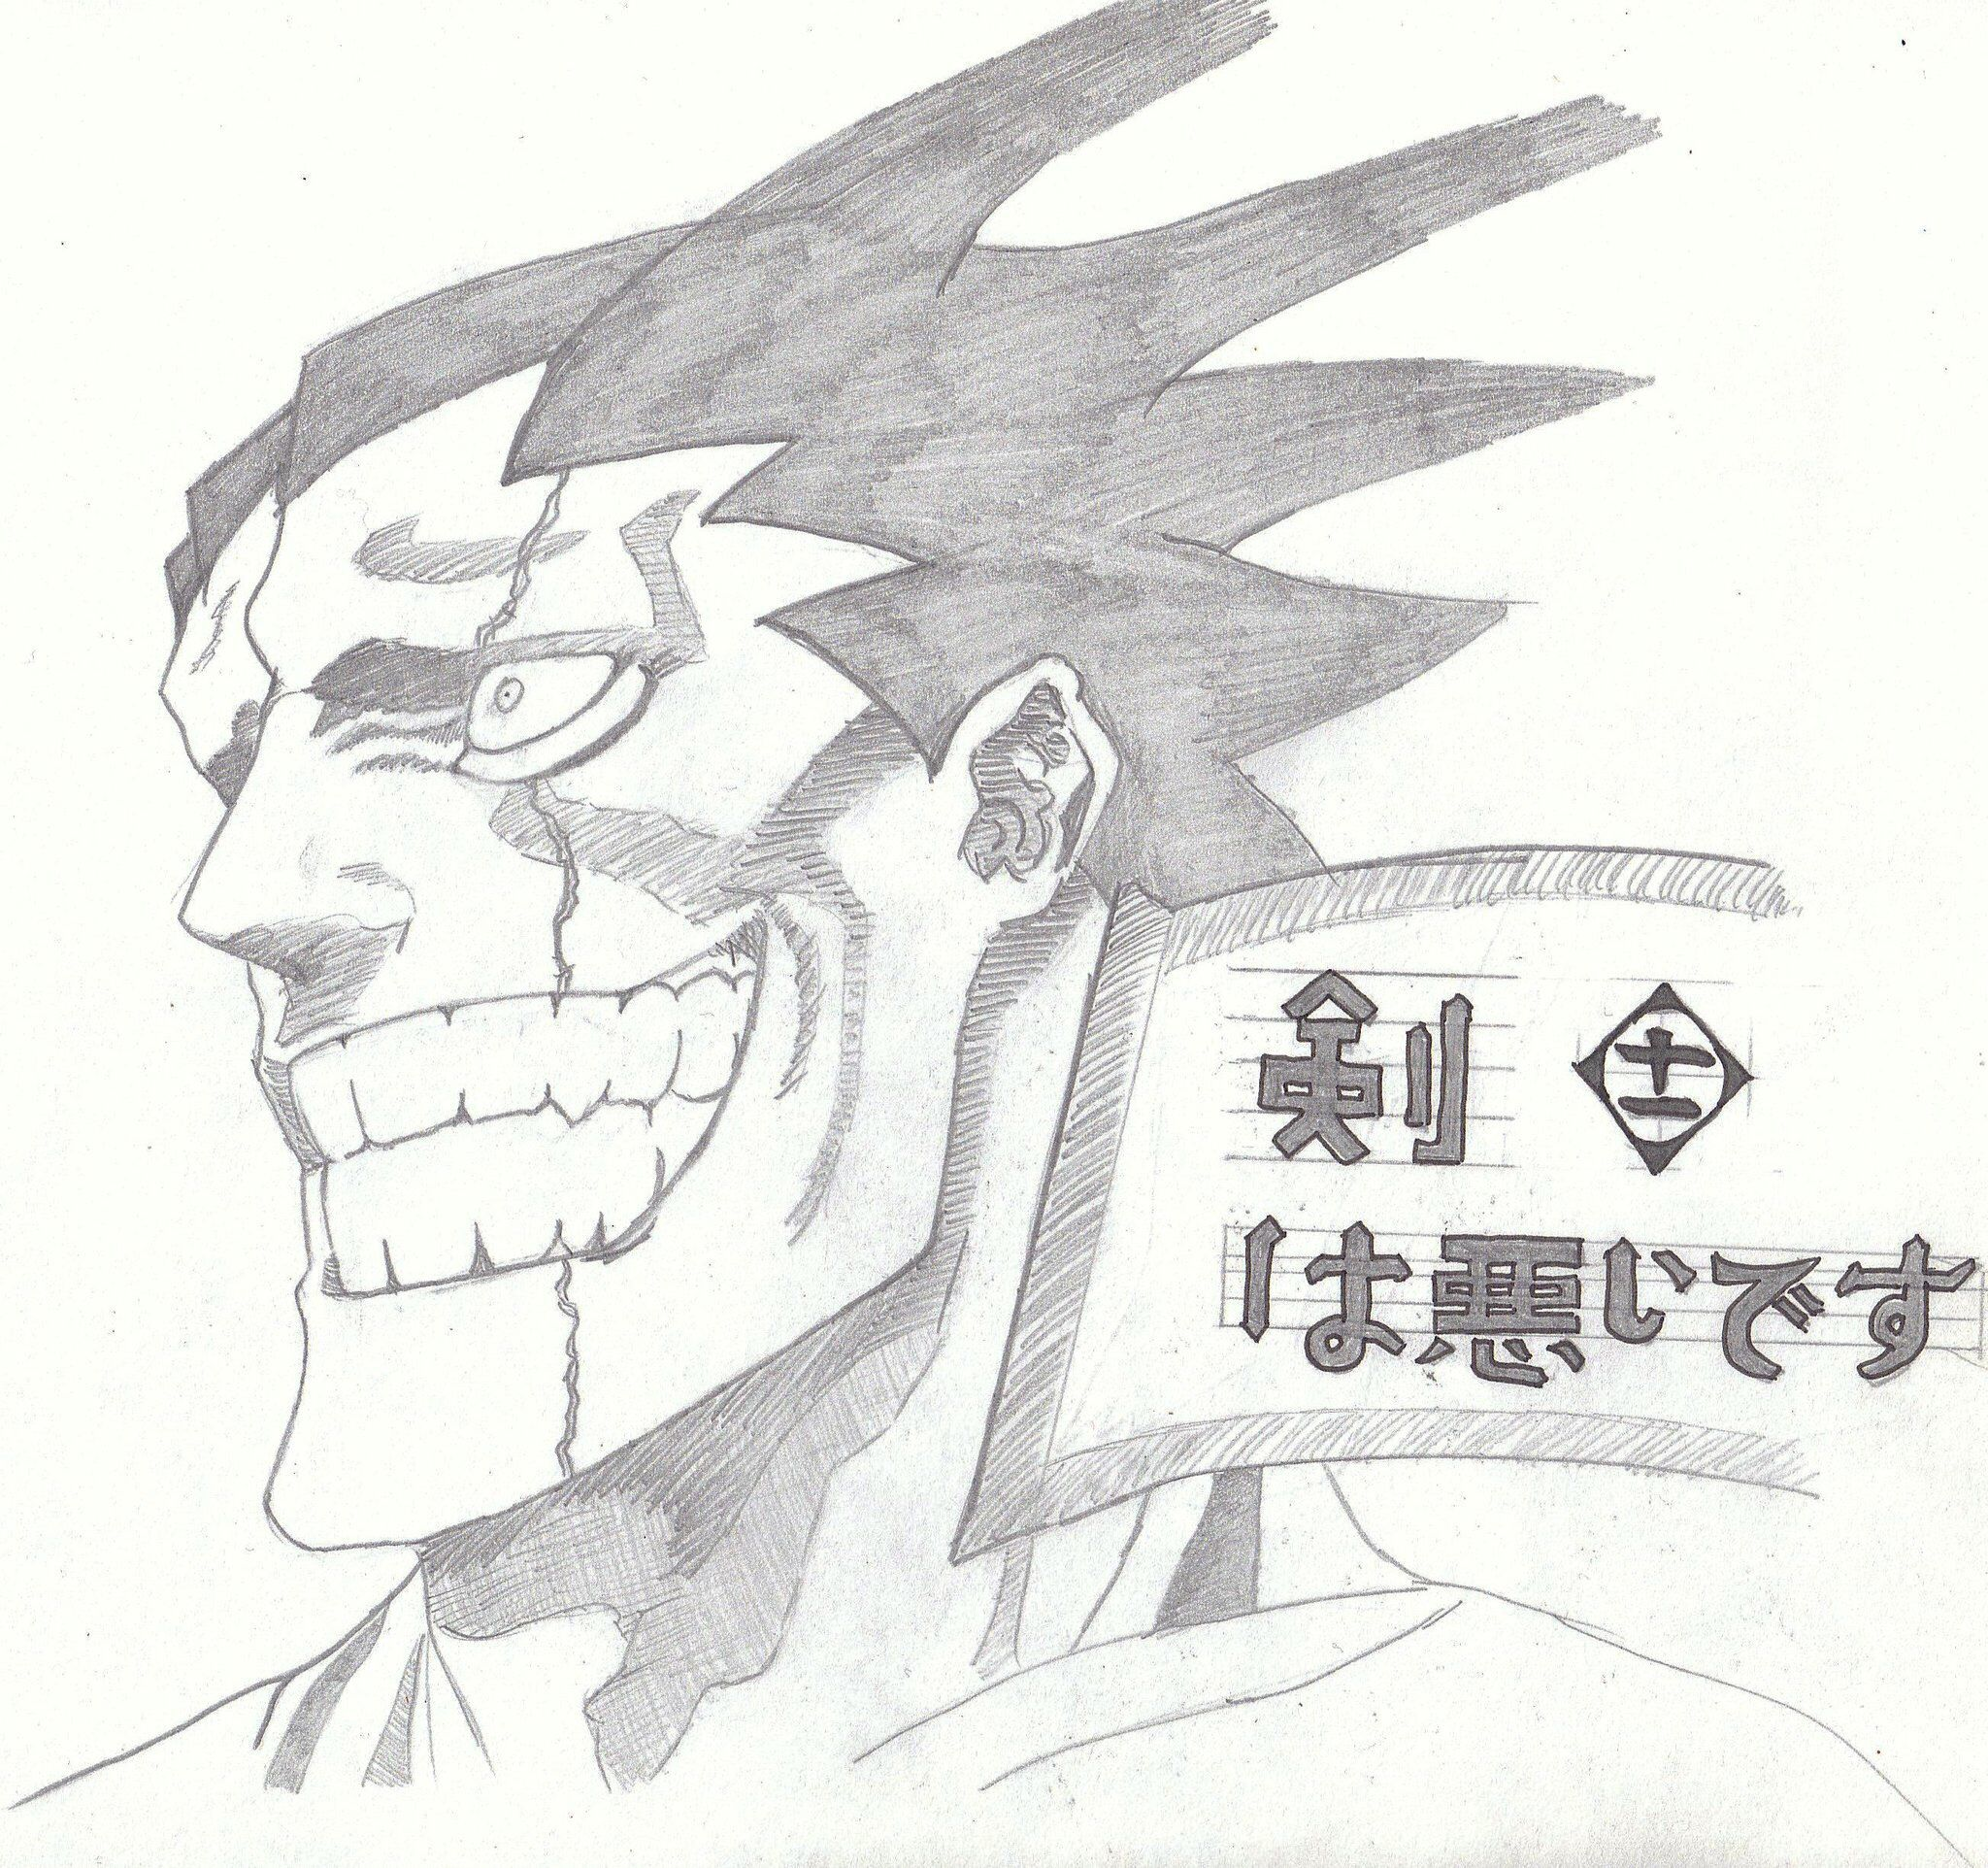 Zaraki Kenpachi is a badass! #bleach (took this image from an old manga I think but it's been a few years)